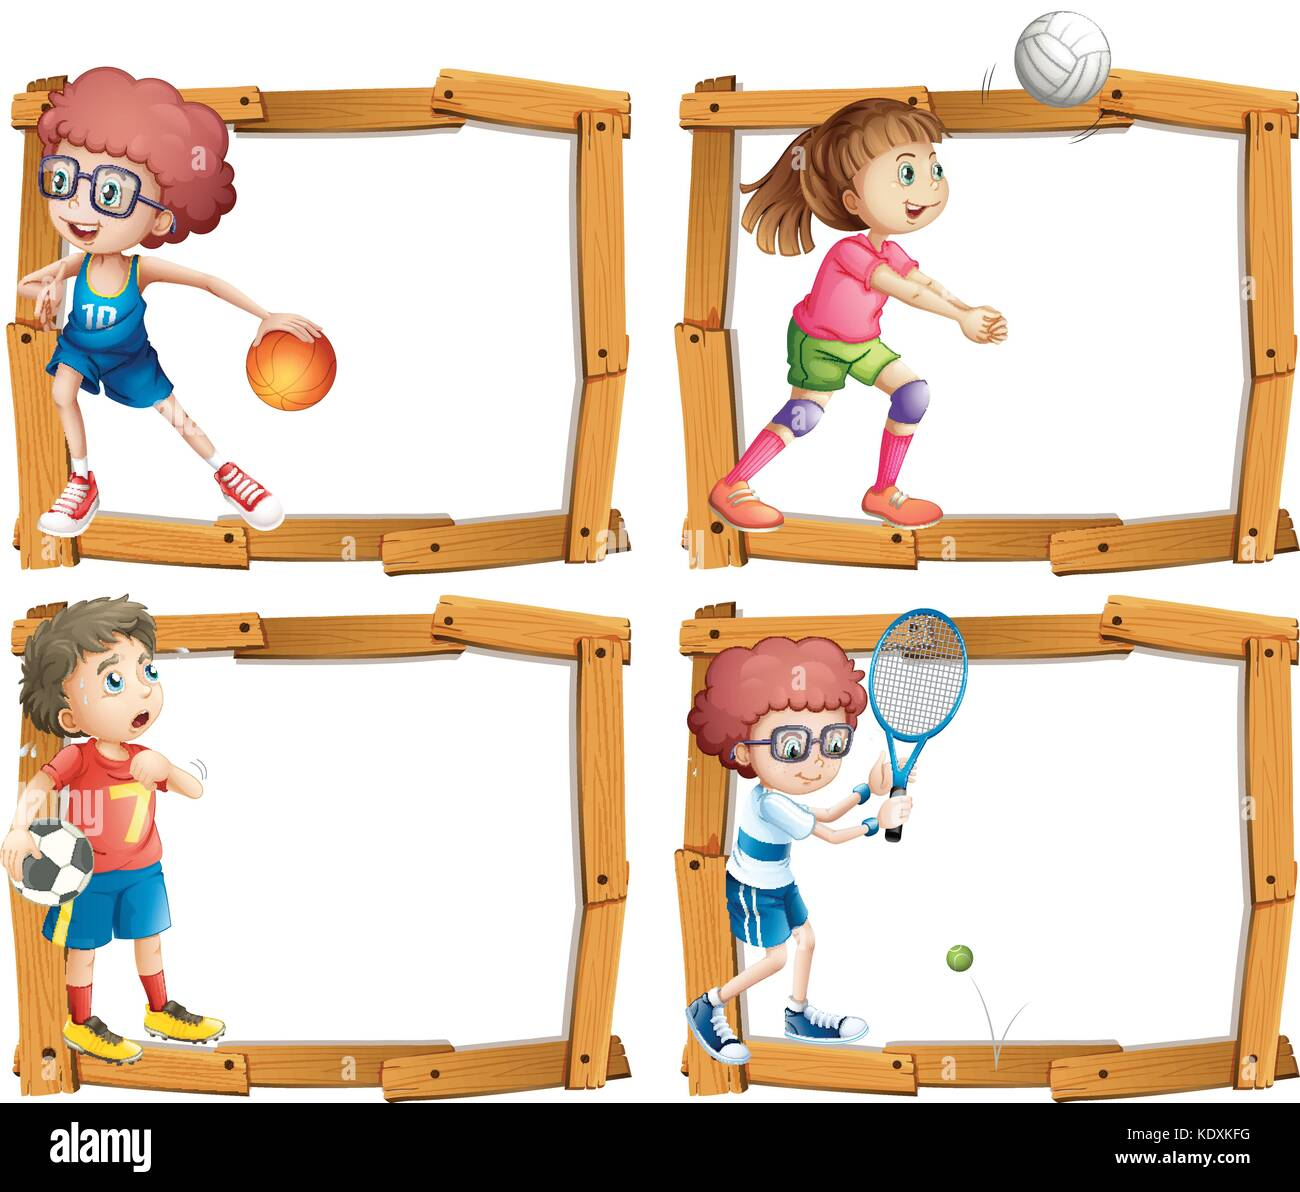 Frame template with kids playing sports illustration Stock Vector ...